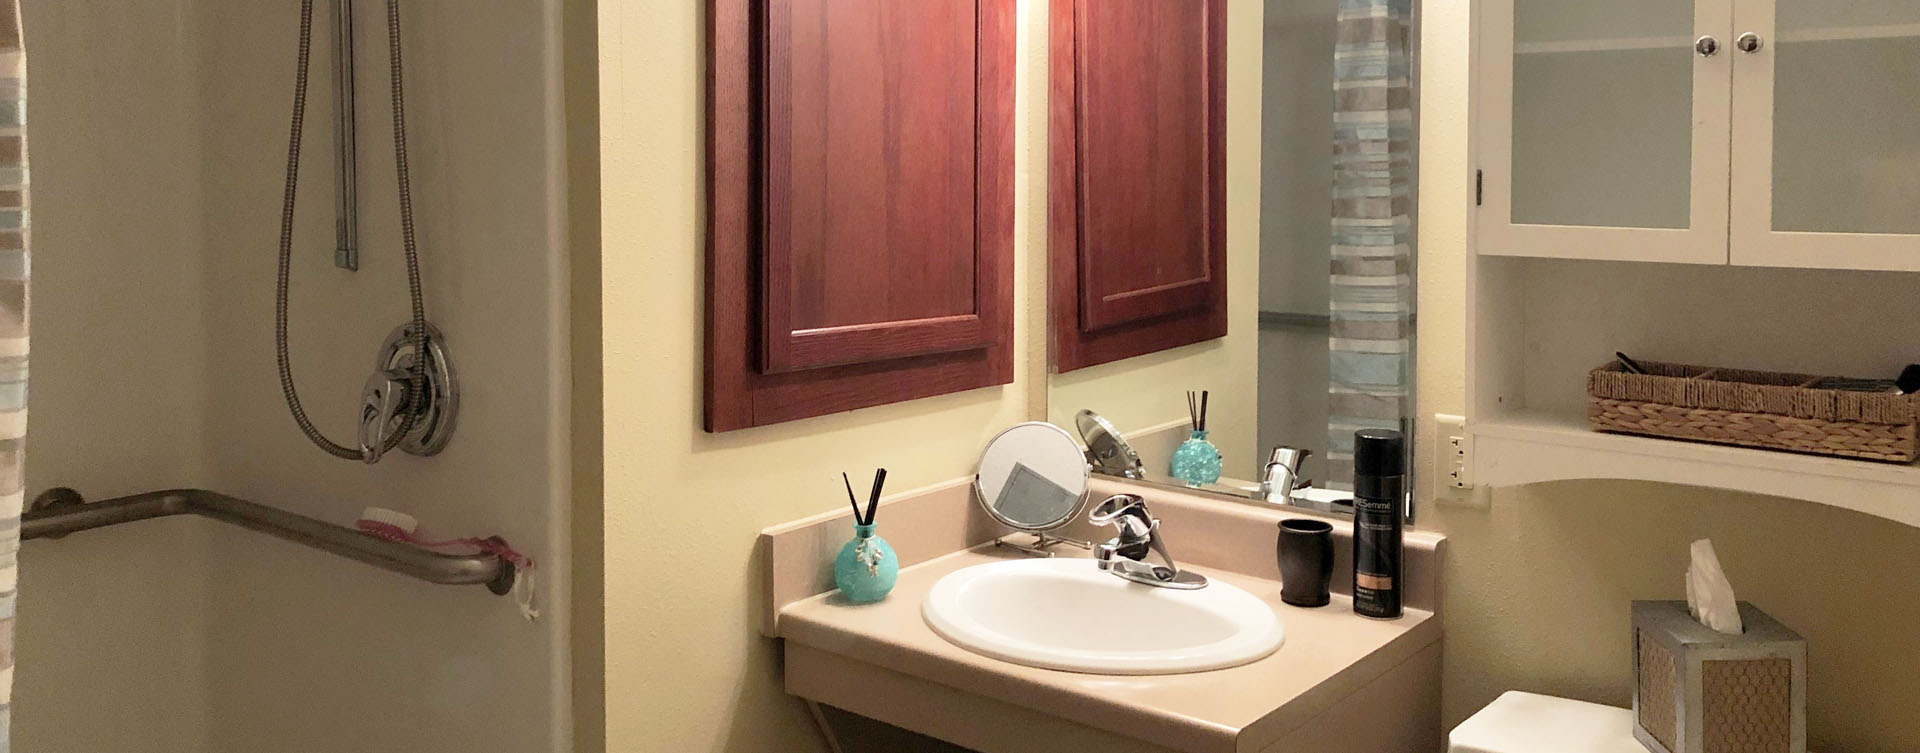 Personalize and decorate to your unique tastes an apartment at Bickford of Bourbonnais